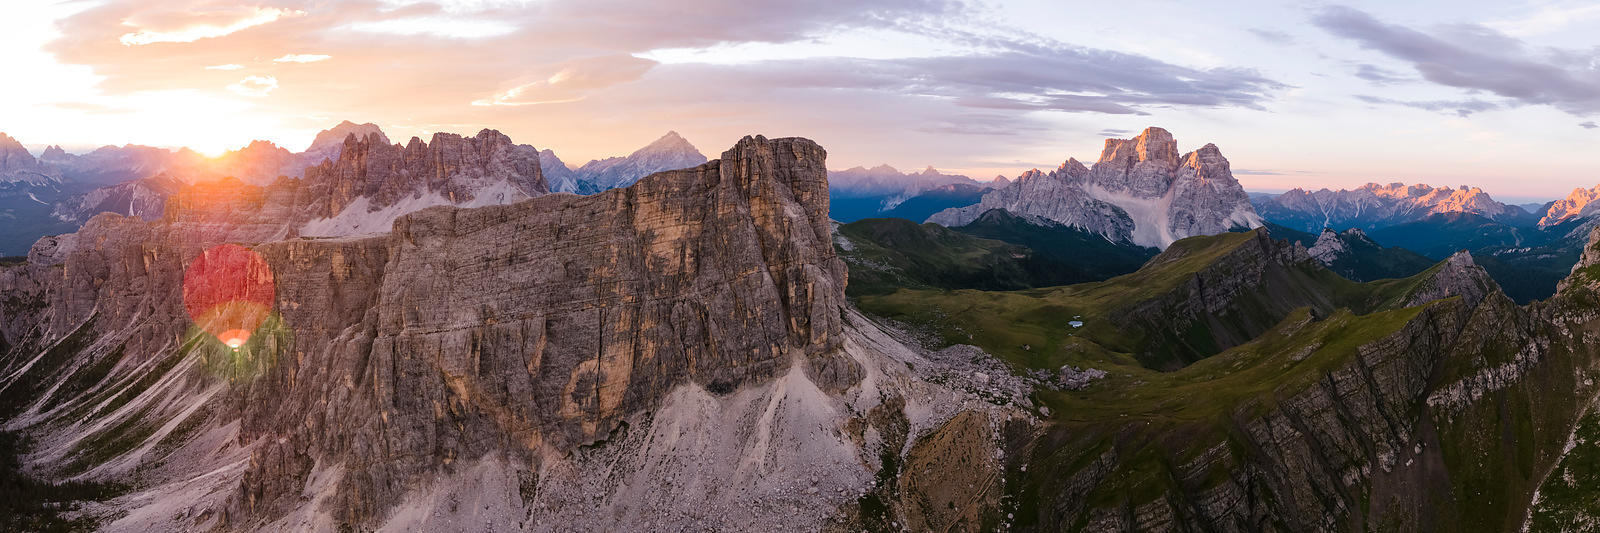 A New Day in the Dolomites